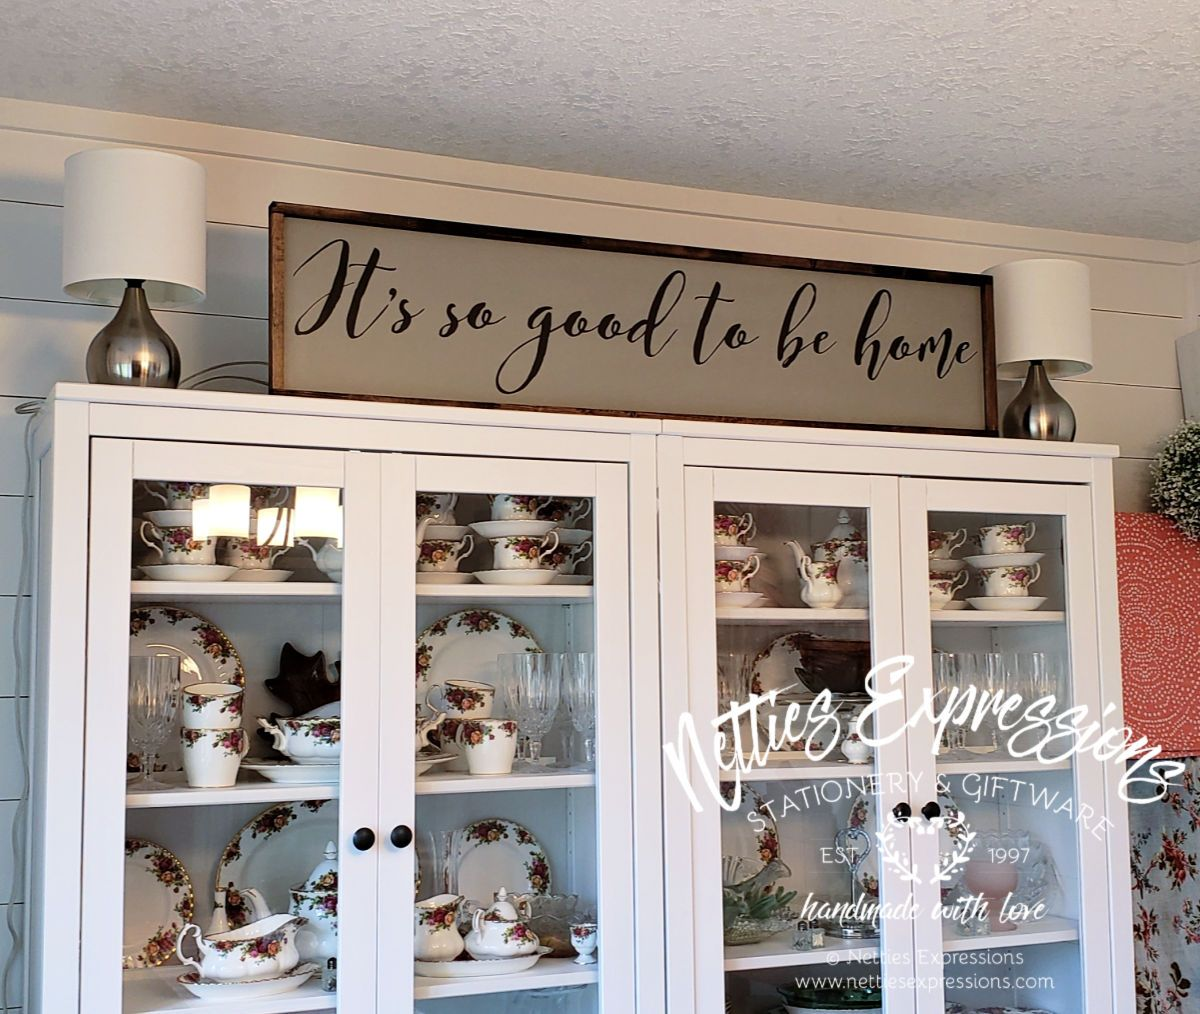 It's so good to be home - Rustic Wood Sign - Netties Expressions